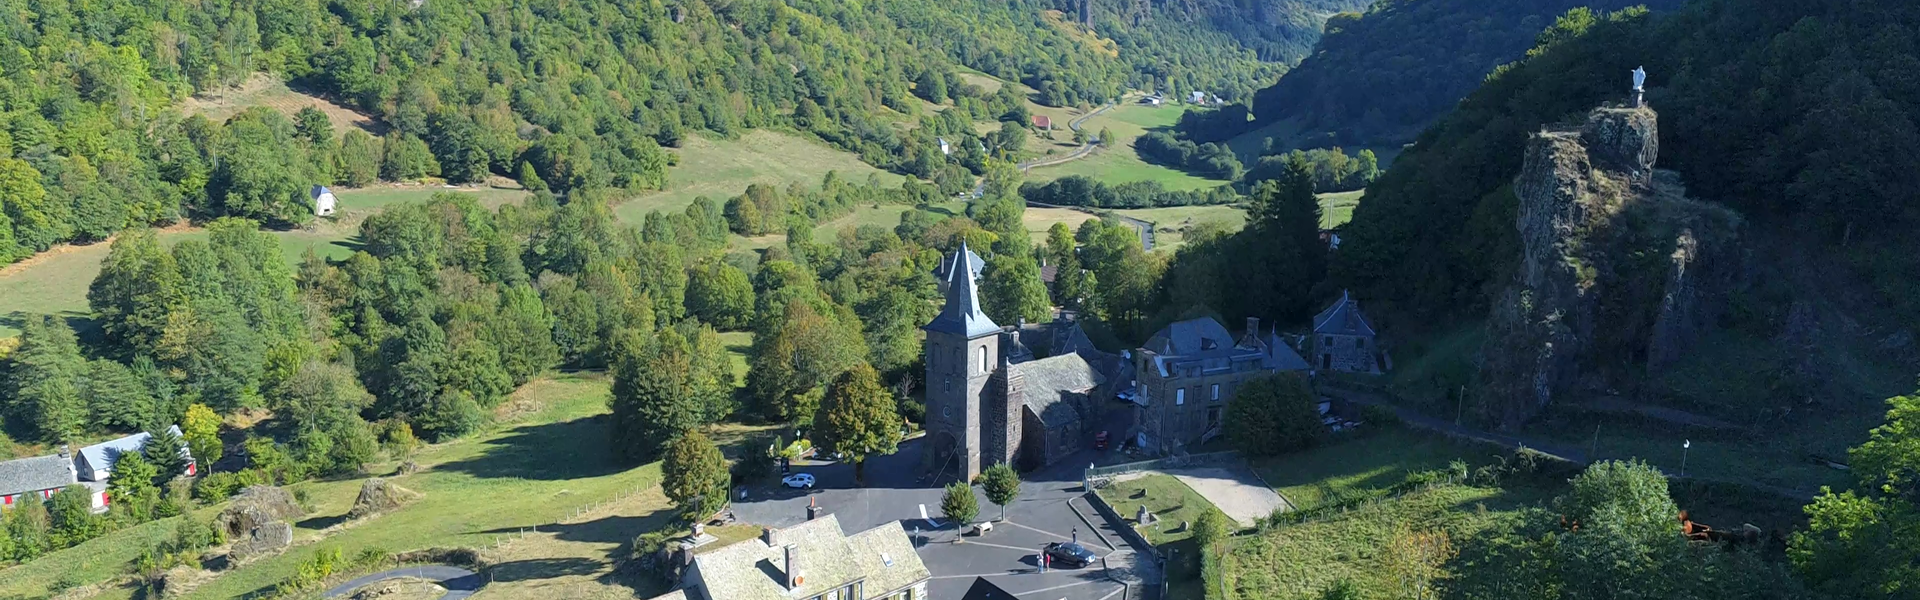 Commune Mairie Village Salers Cantal Auvergne